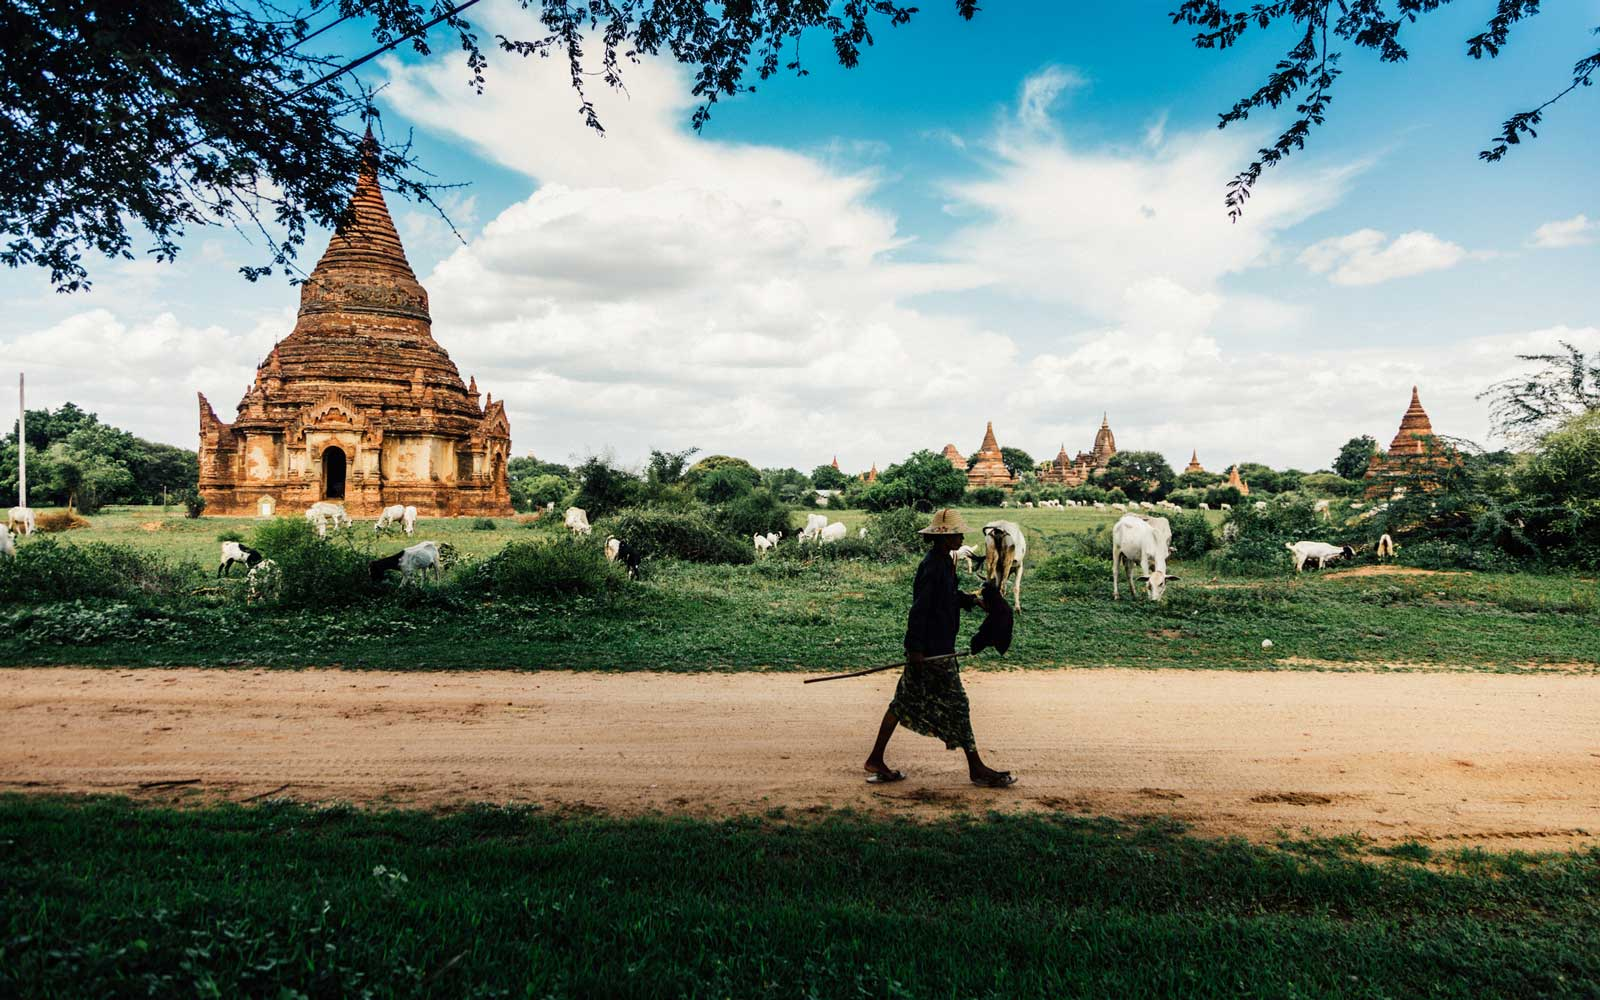 Bagan (formerly Pagan) is an ancient city located in the Mandalay Region of Burma (Myanmar)